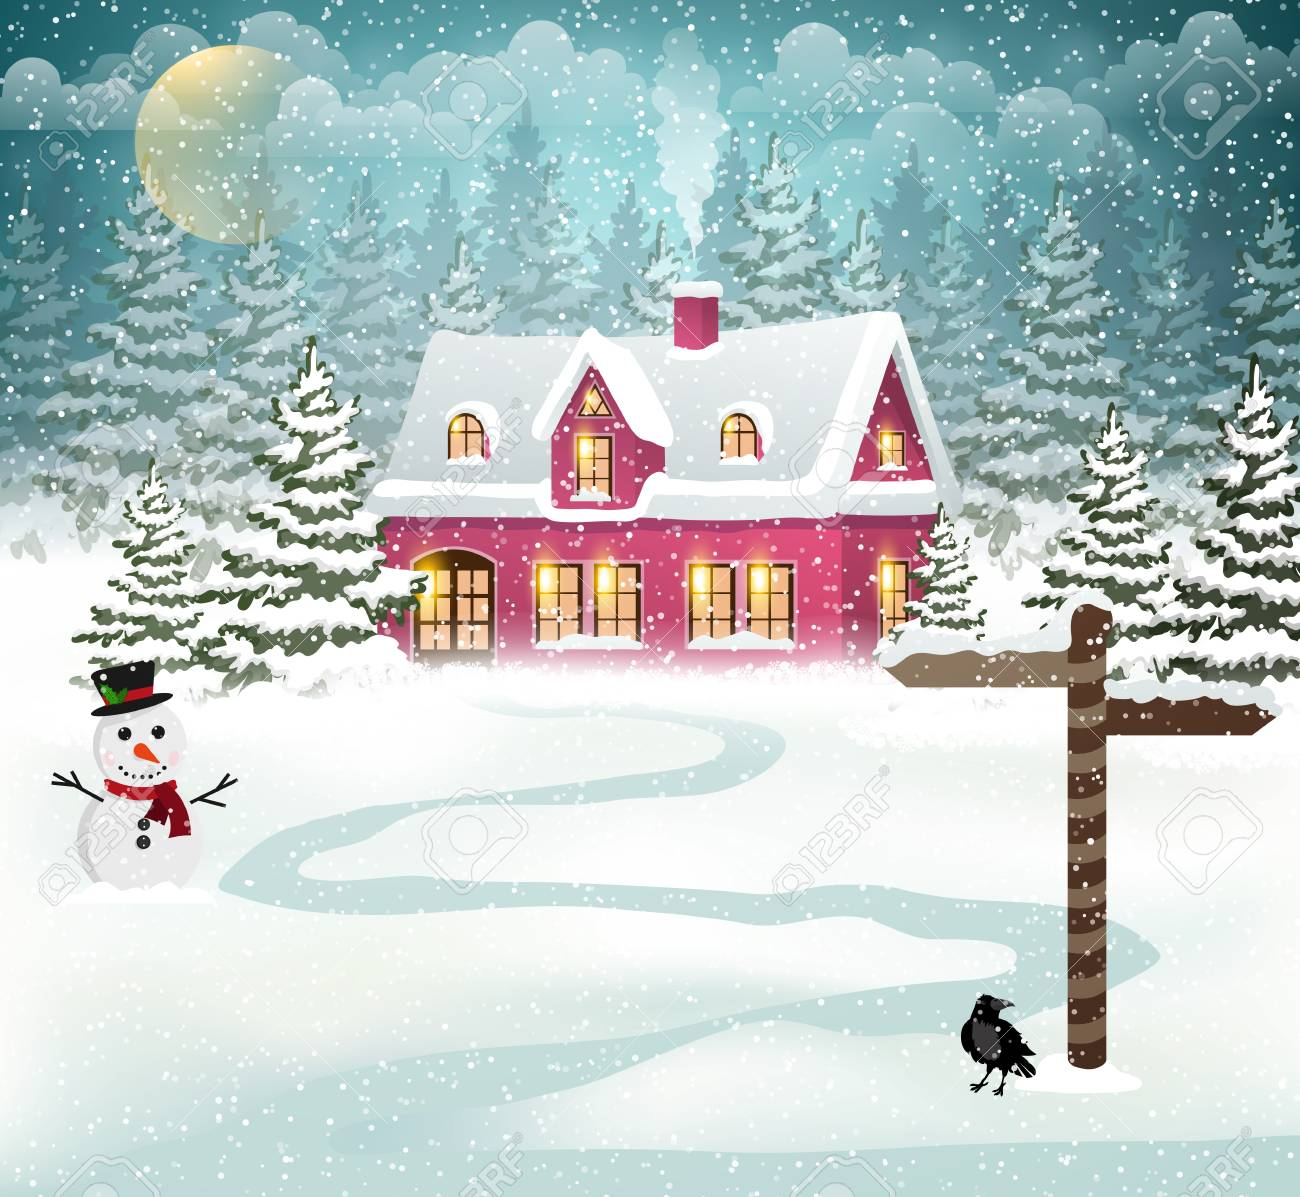 Winter village background with snow covered house and snowman - 67392516